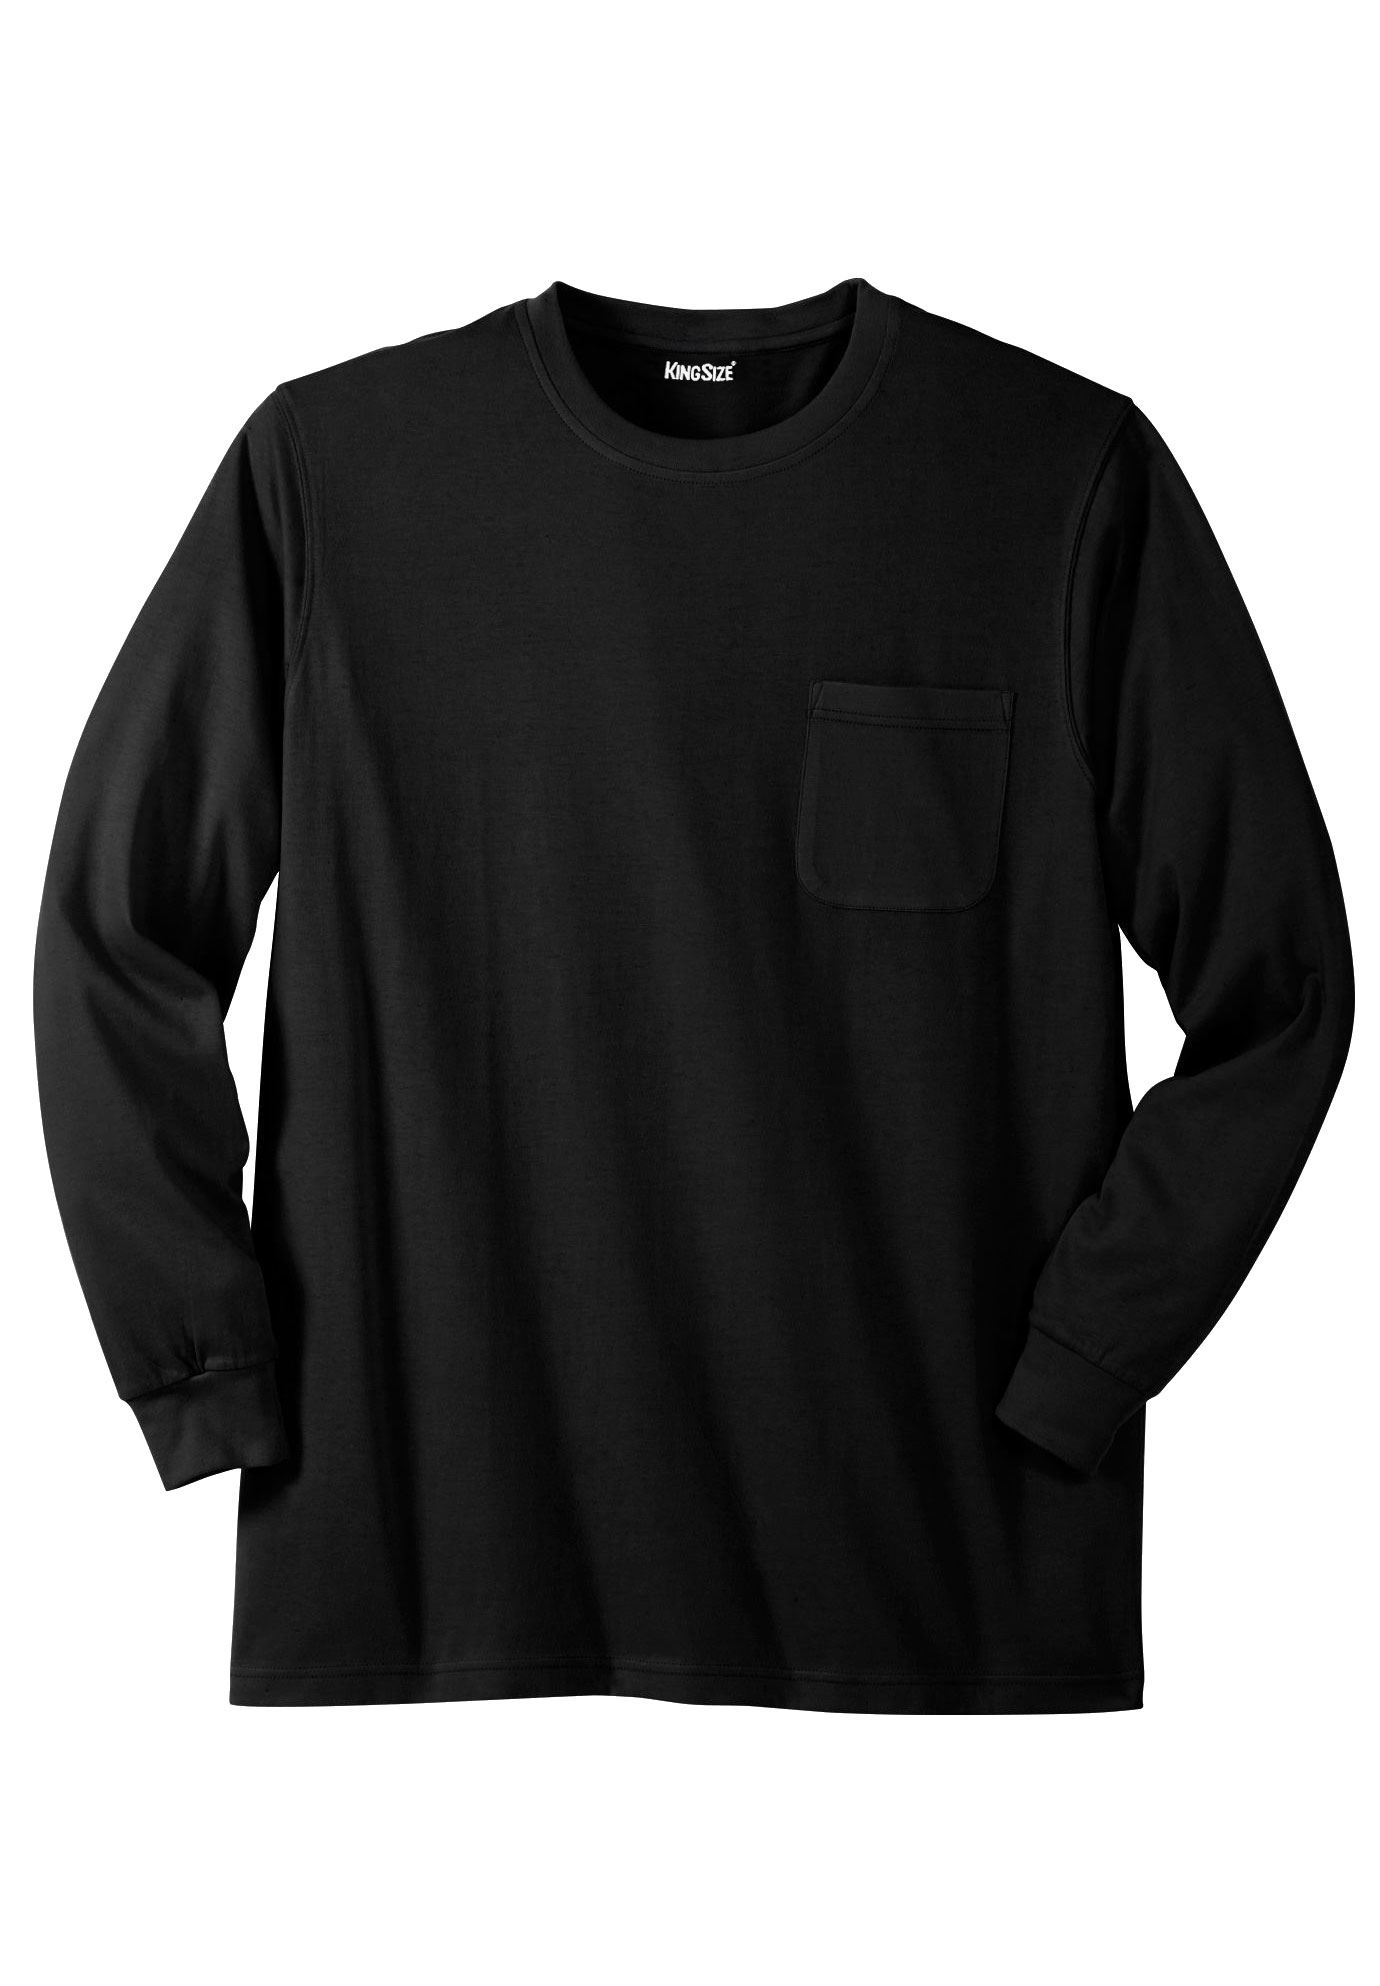 Kingsize Men's Big & Tall Shrink-less Lightweight Long-sleeve Crewneck Pocket Tee